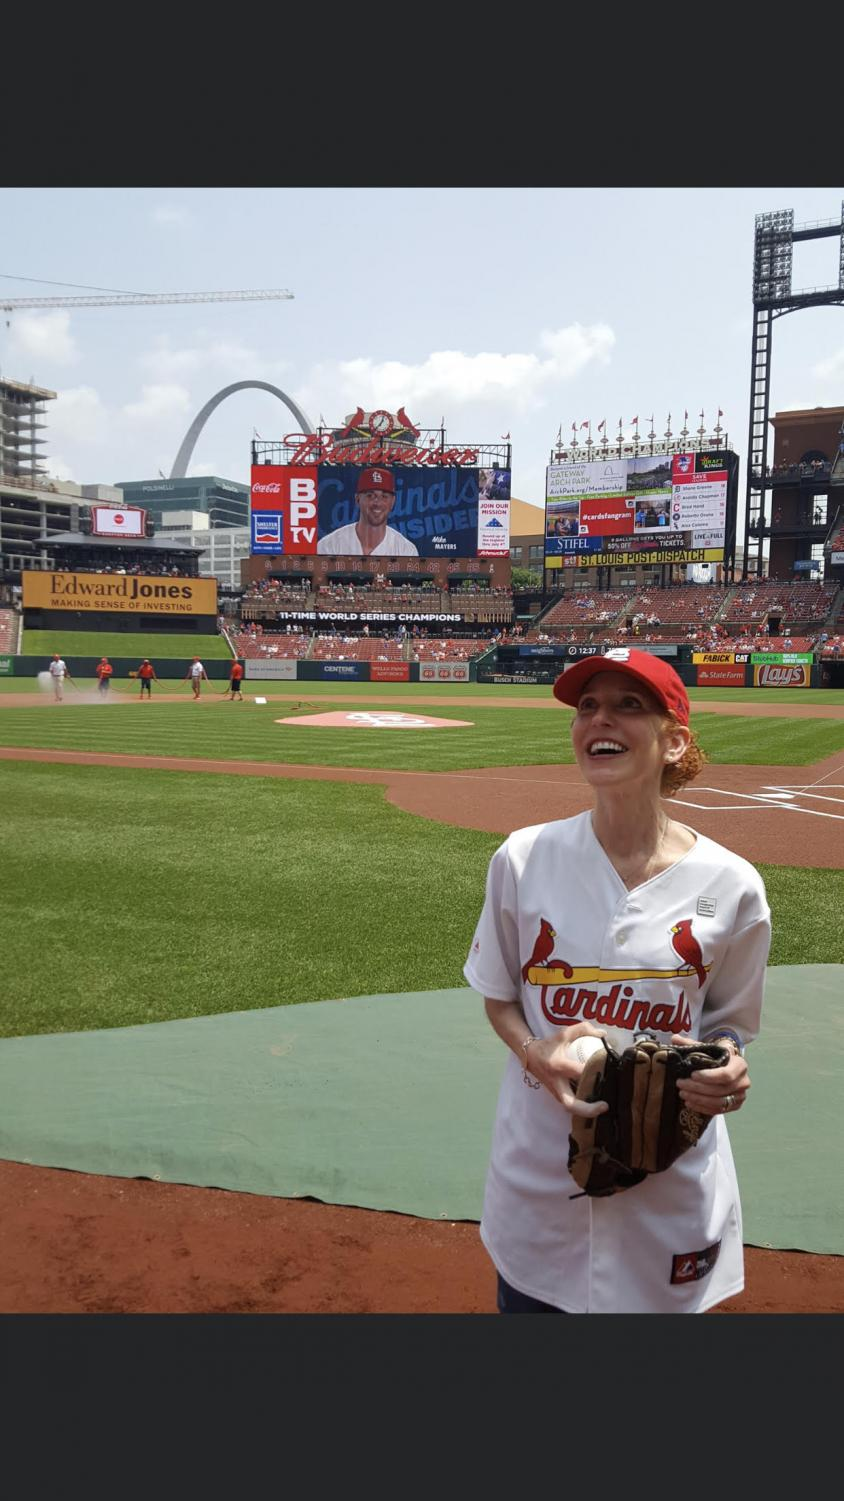 This summer, Marlin got the chance to throw out the first pitch at a Cardinal's game due to all her that work she's done for the Adult Congenital Heart Association.